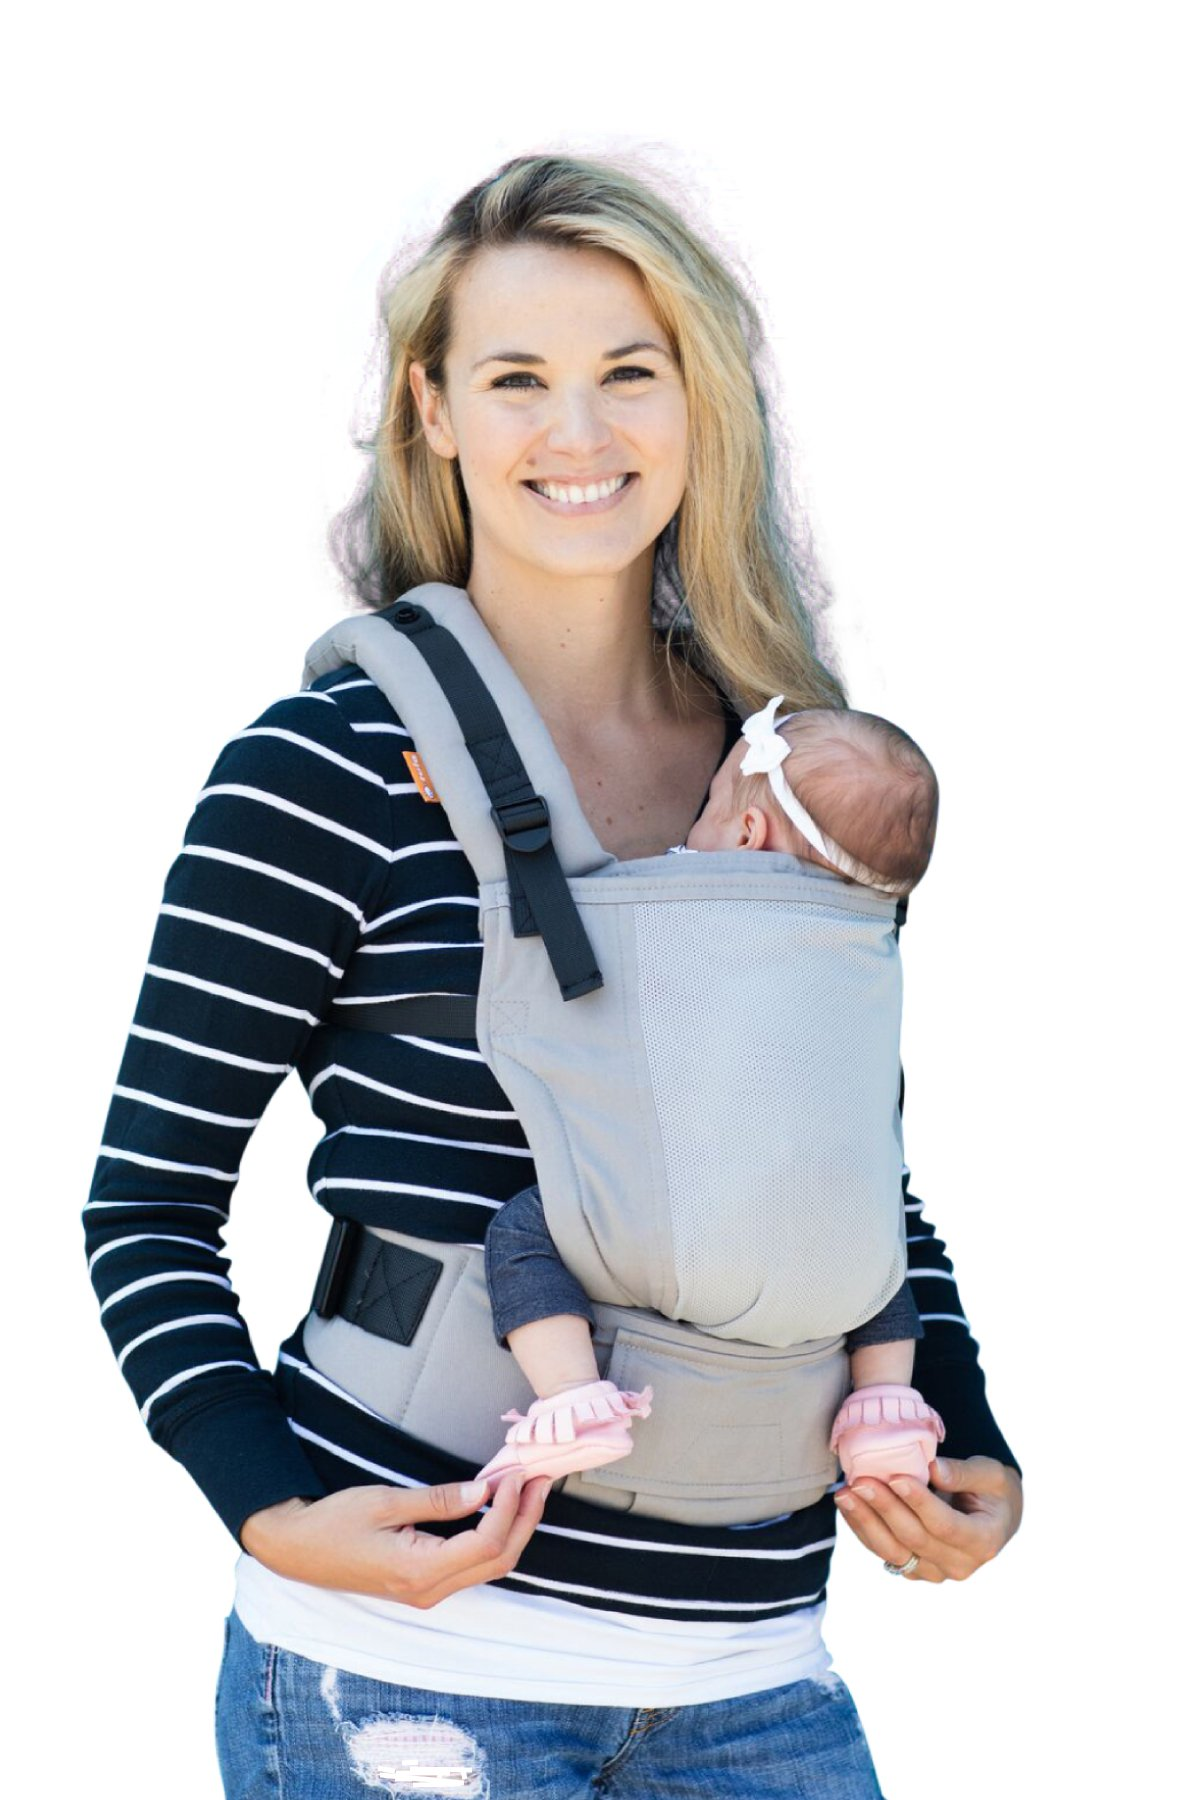 Baby Tula Free-to-Grow Coast Mesh Baby Carrier, Adjustable Newborn Carrier, Ergonomic and Multiple Positions for 7 – 45 lbs. – Coast Overcast (Light Gray)